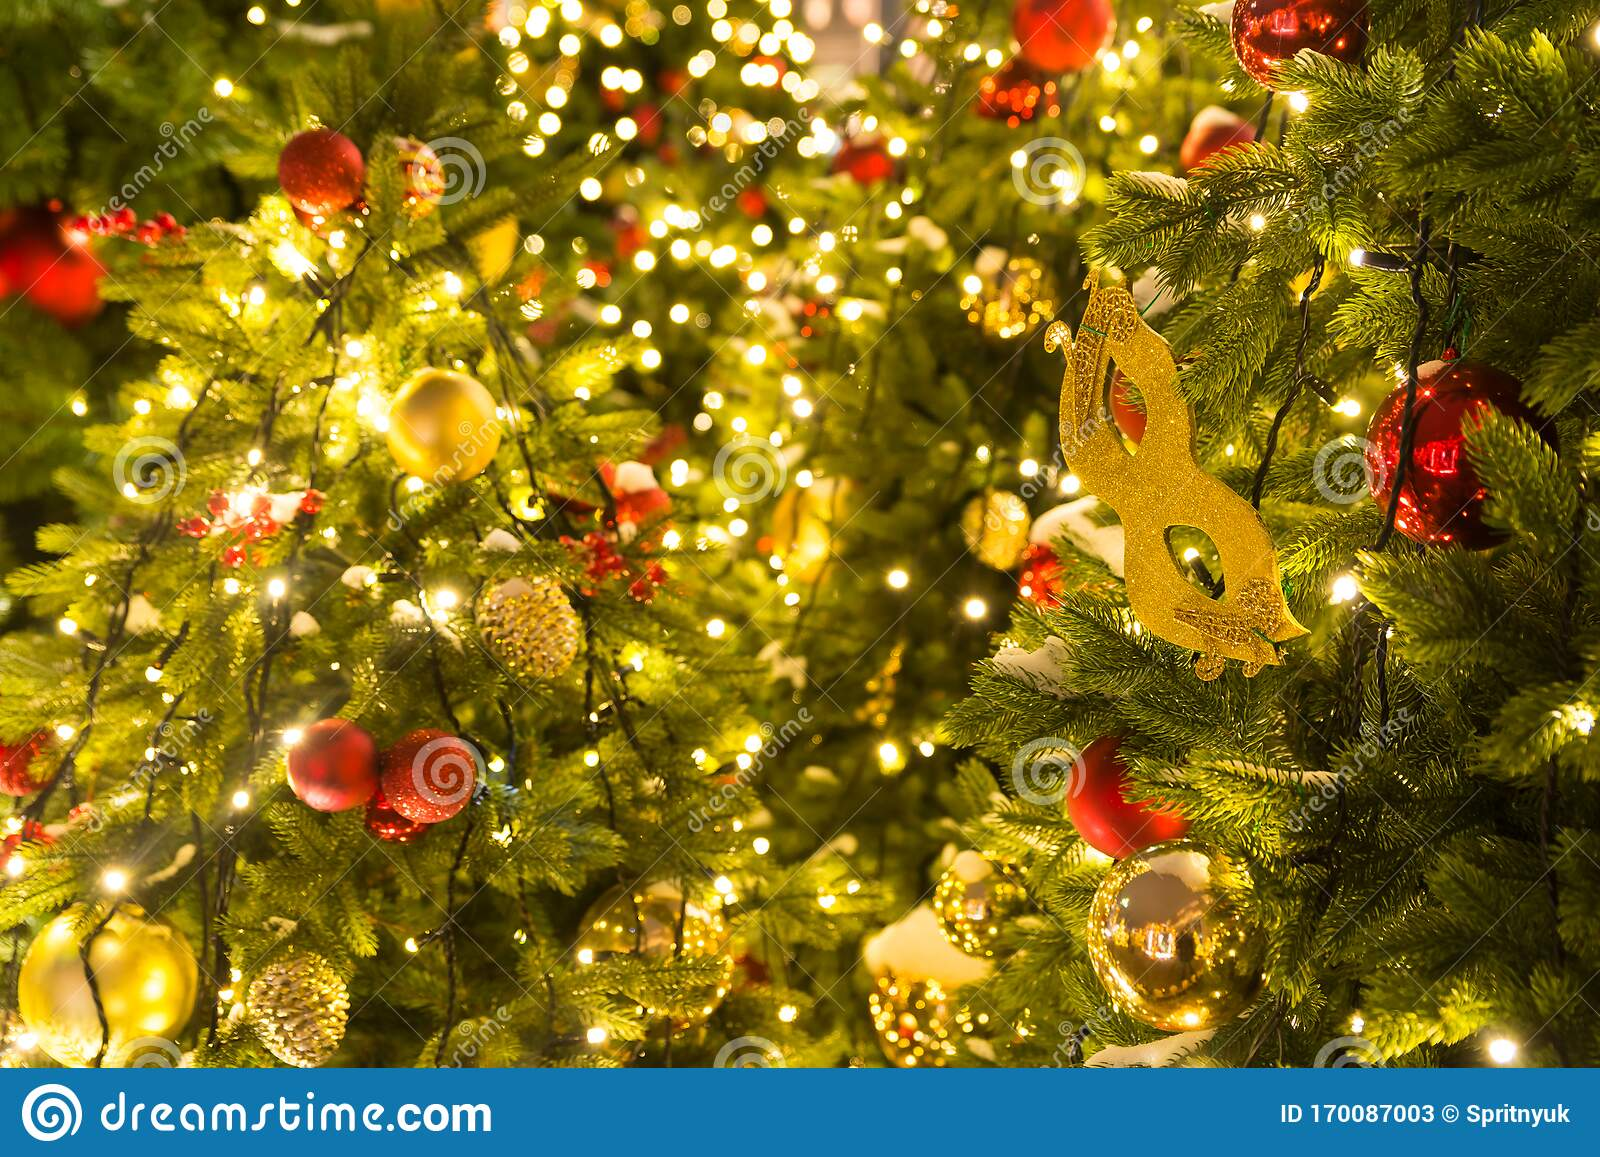 Red And Gold Christmas Decorations And Balls On The Christmas Tree With Yellow Garlands Stock Image Image Of Decorations White 170087003